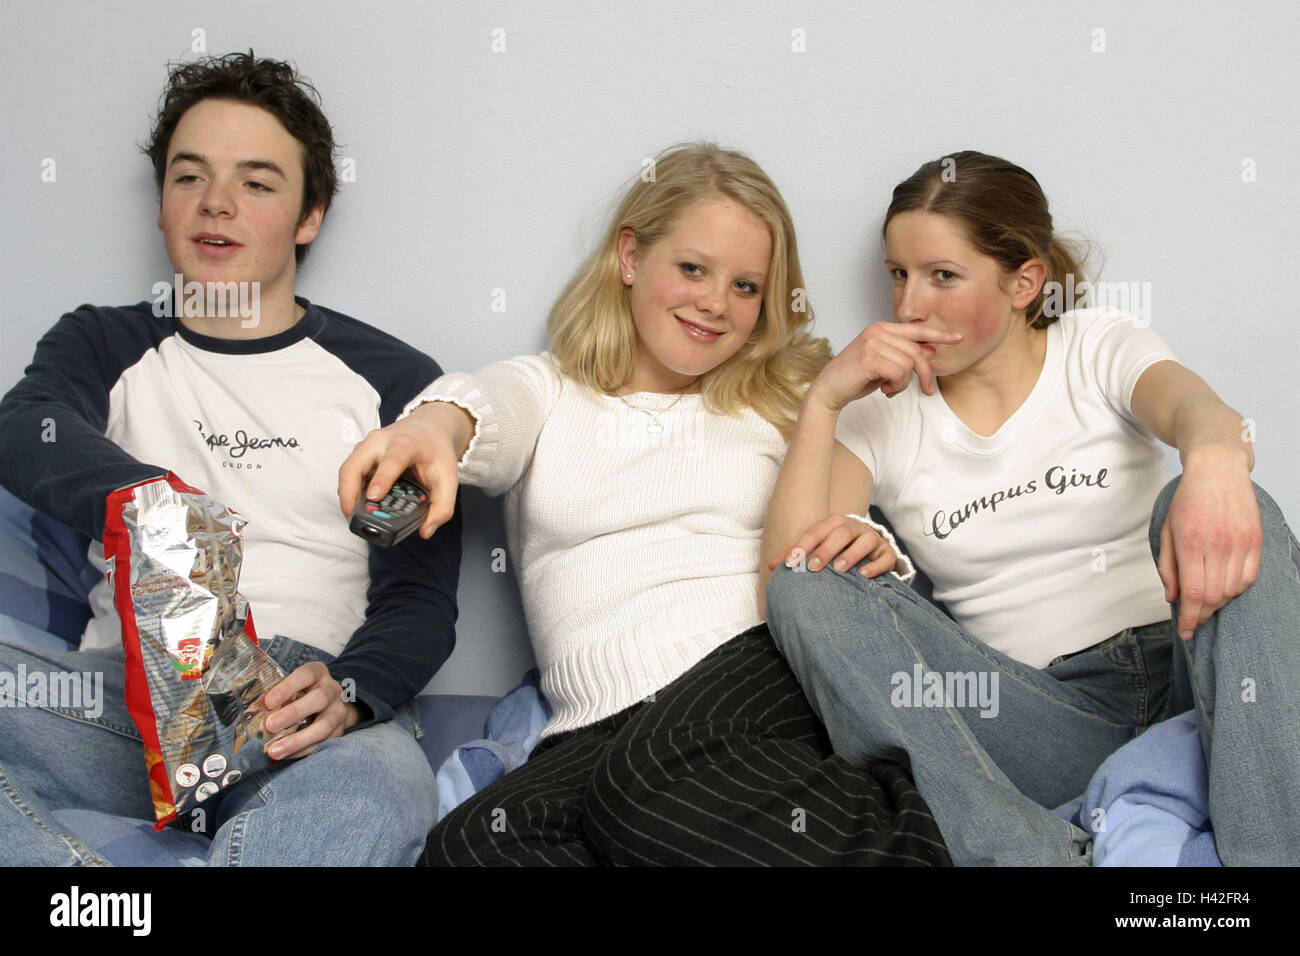 Teenagers, boy, girl, watch TV, zap, eat crisps, happy, only positive use 17 years, young persons, teenagers, three, - Stock Image